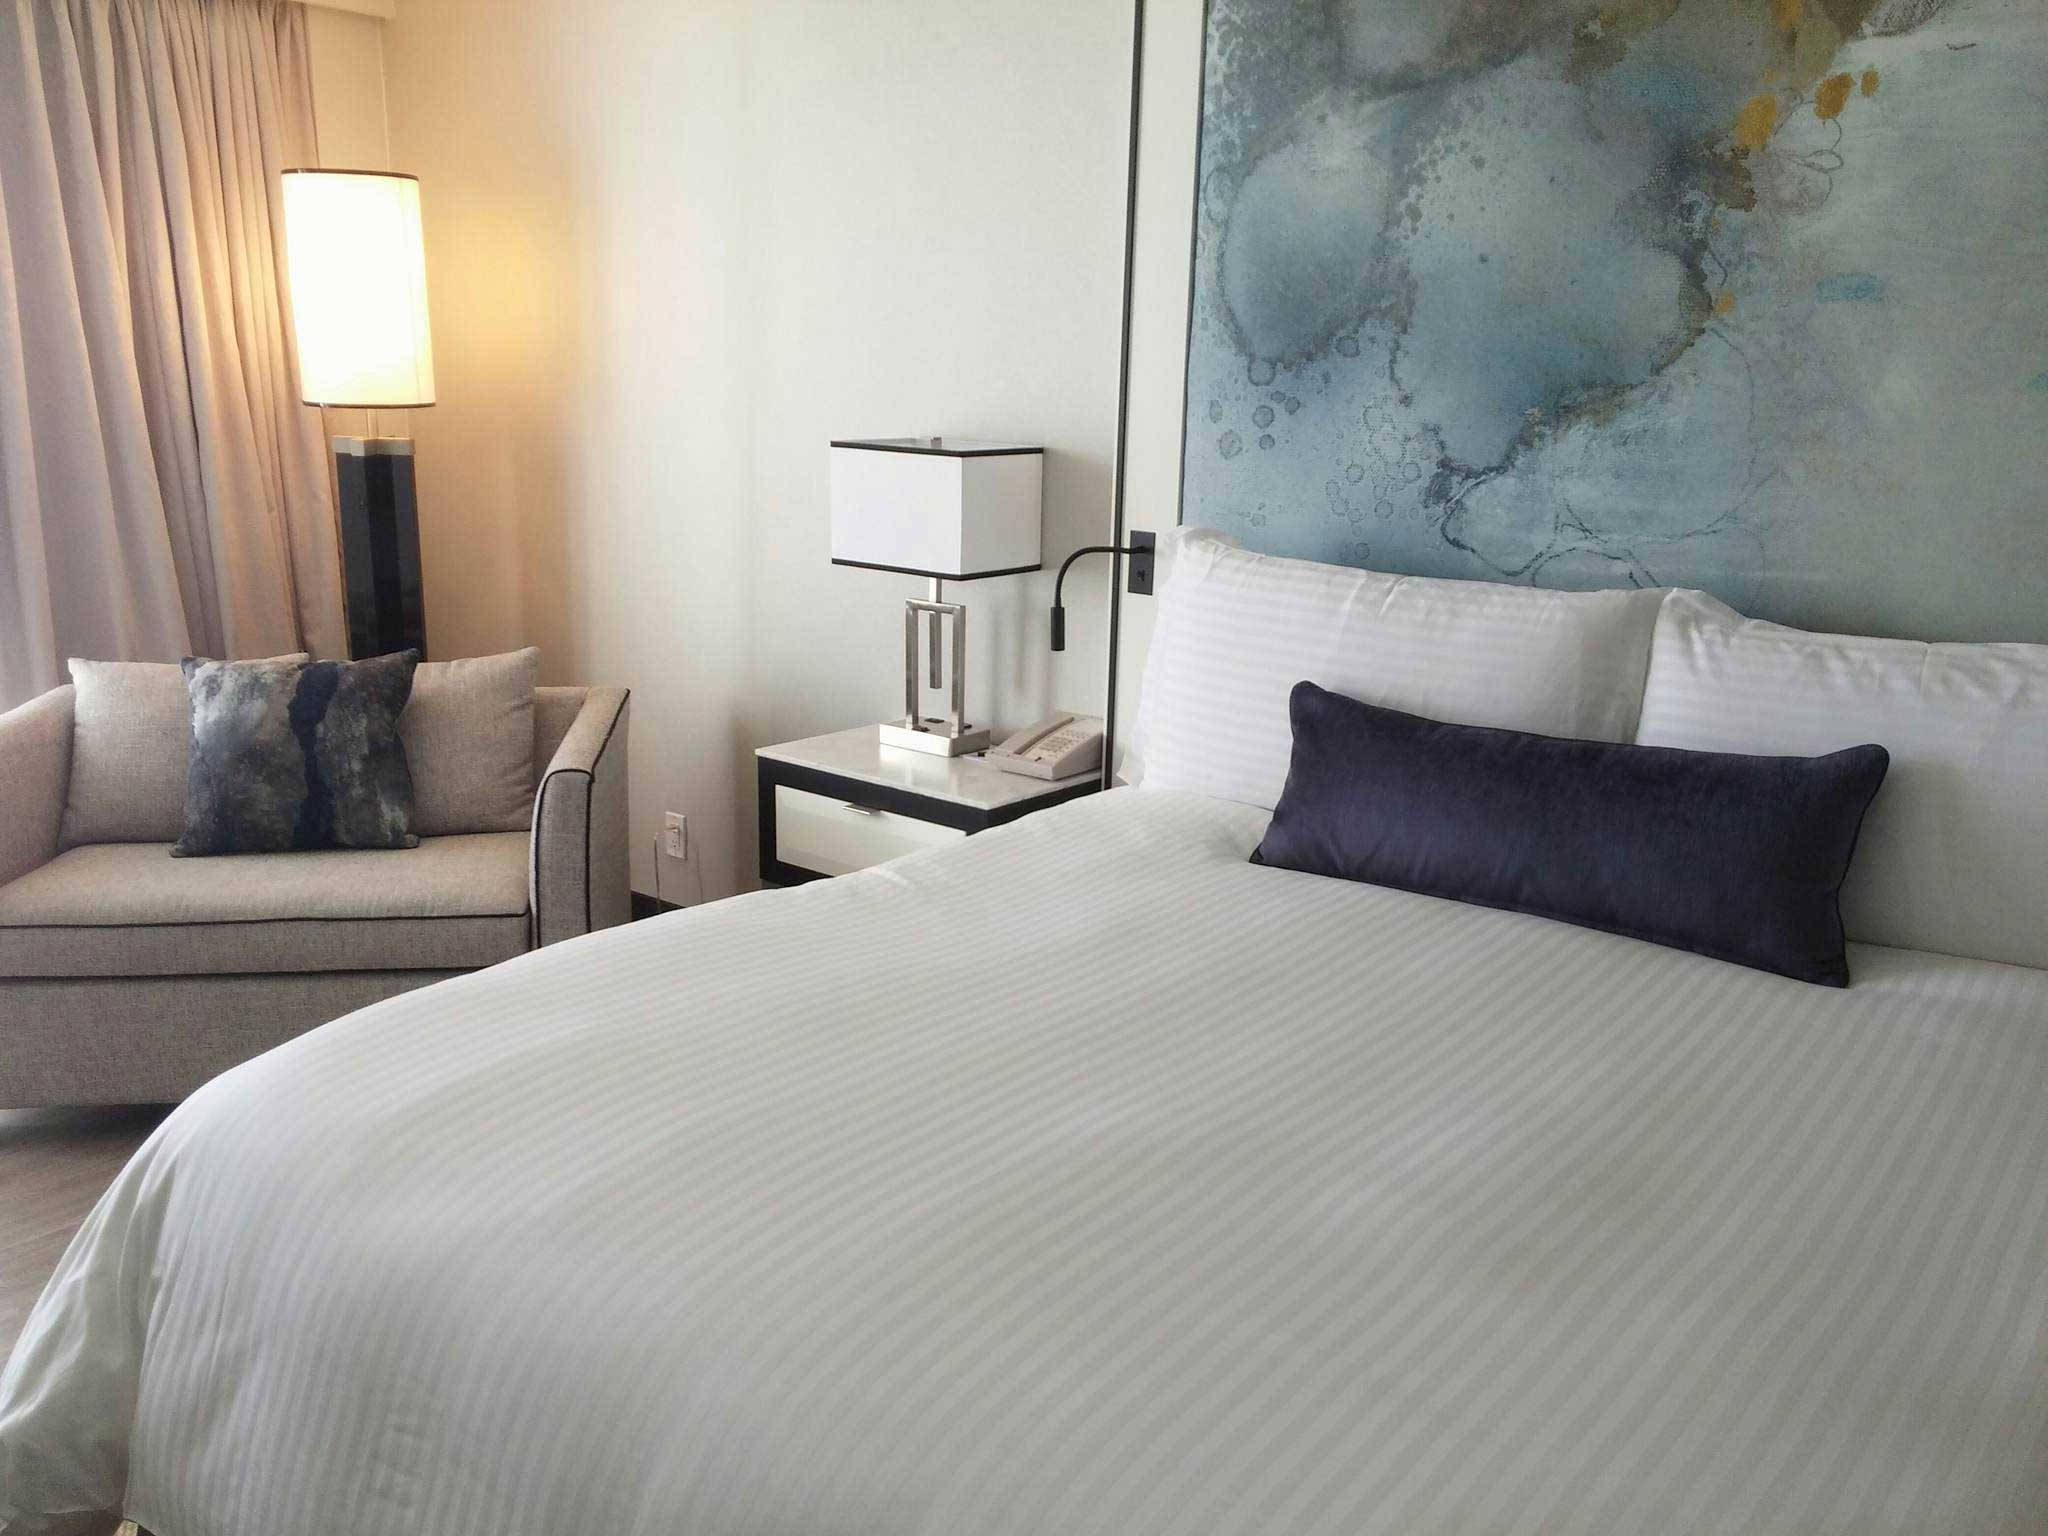 Miami-Dade's hotel industry rebounds across the board